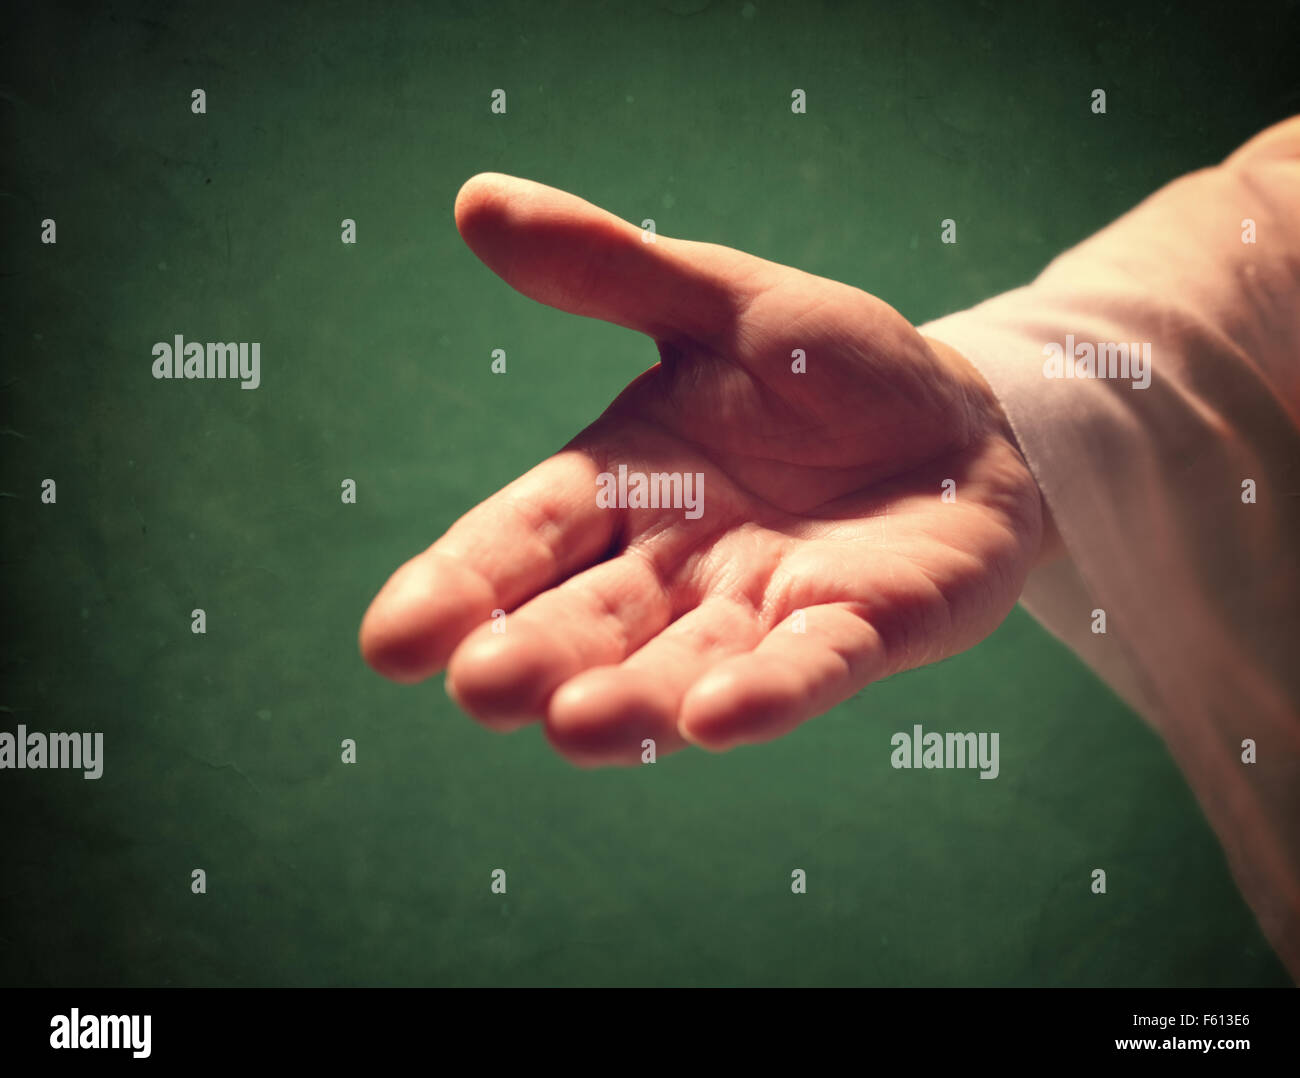 Hand of God reaching out - Stock Image